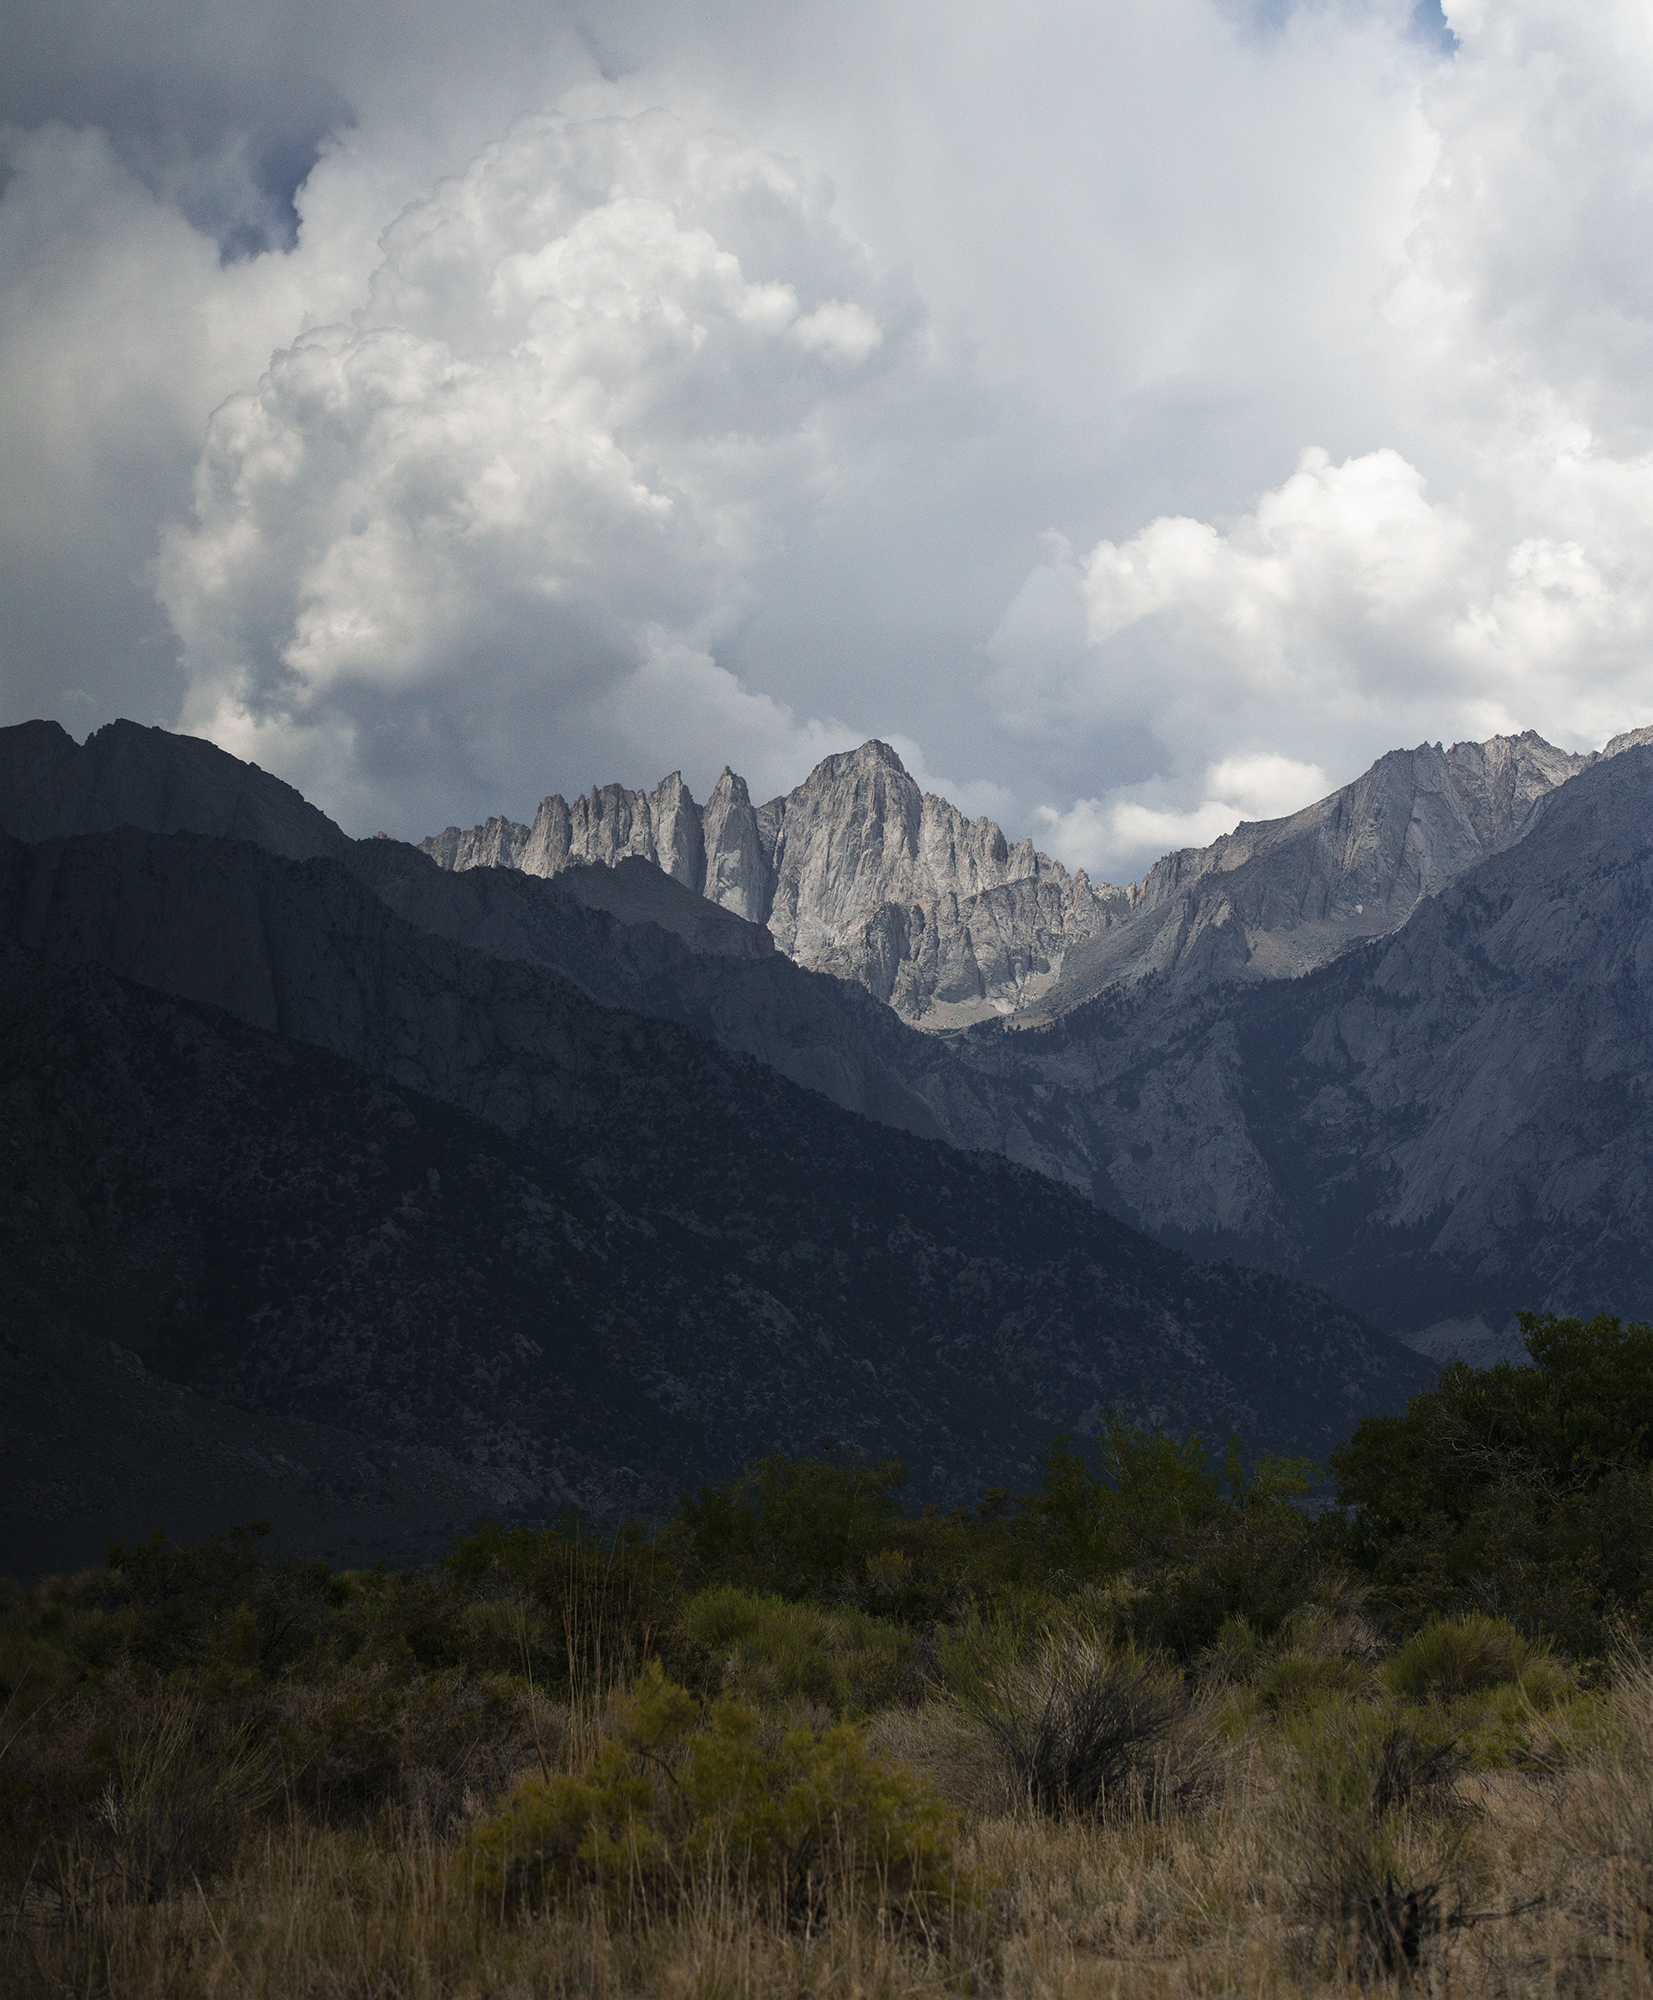 Mount Whitney's last breath before the storm